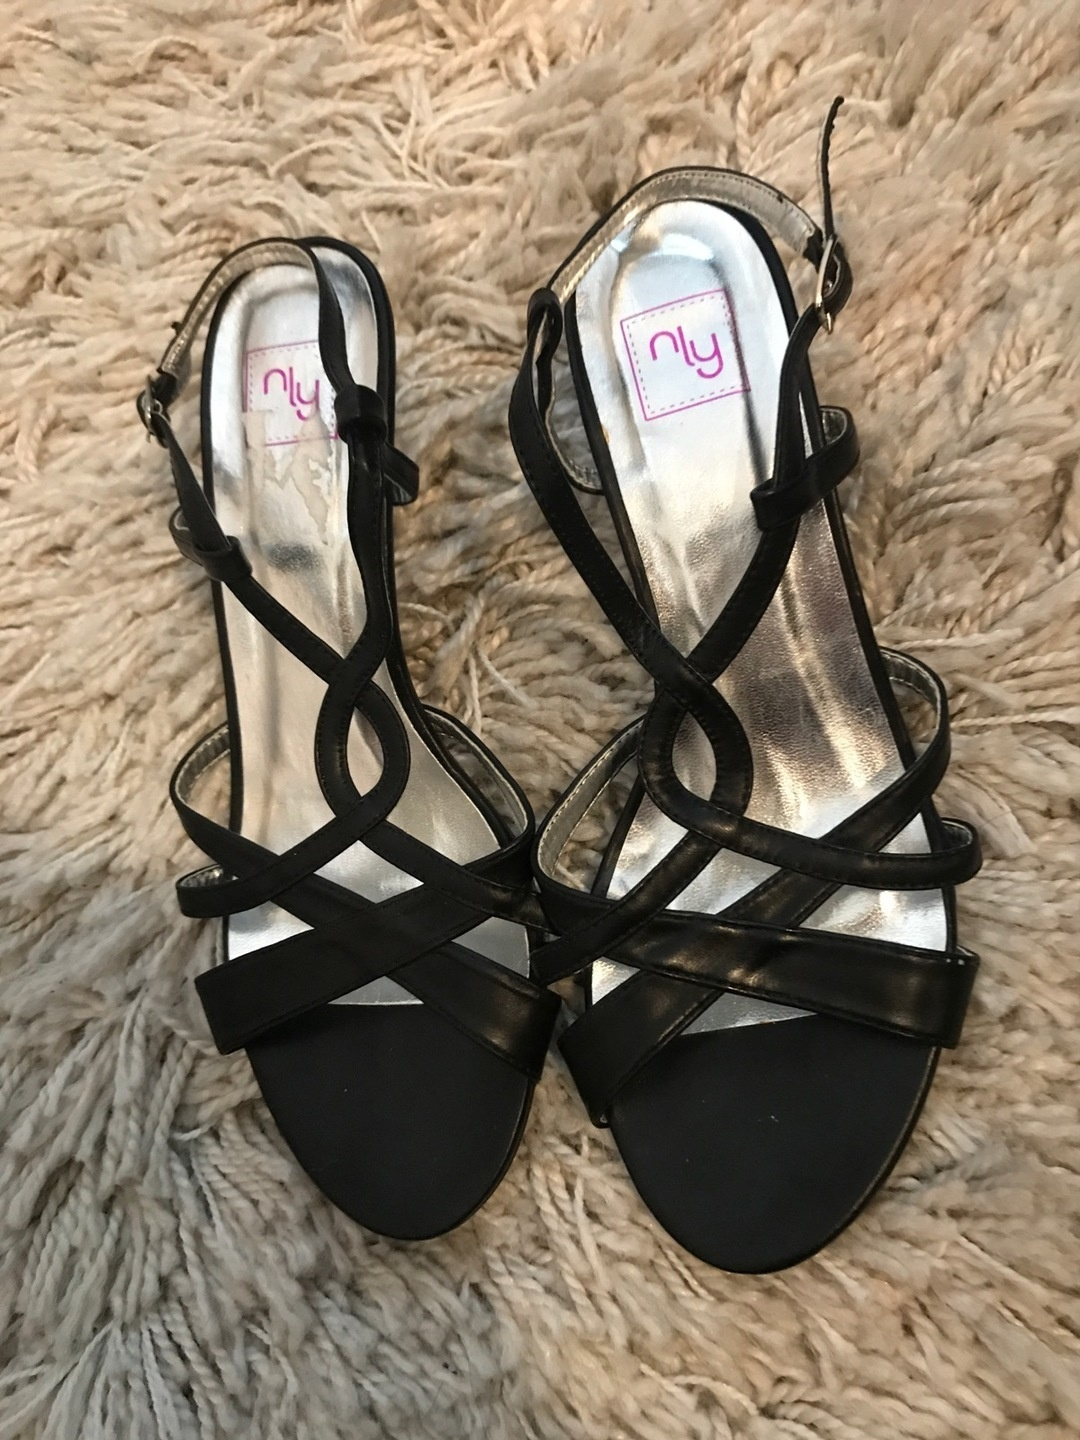 Women's heels & dress shoes - NLY photo 2